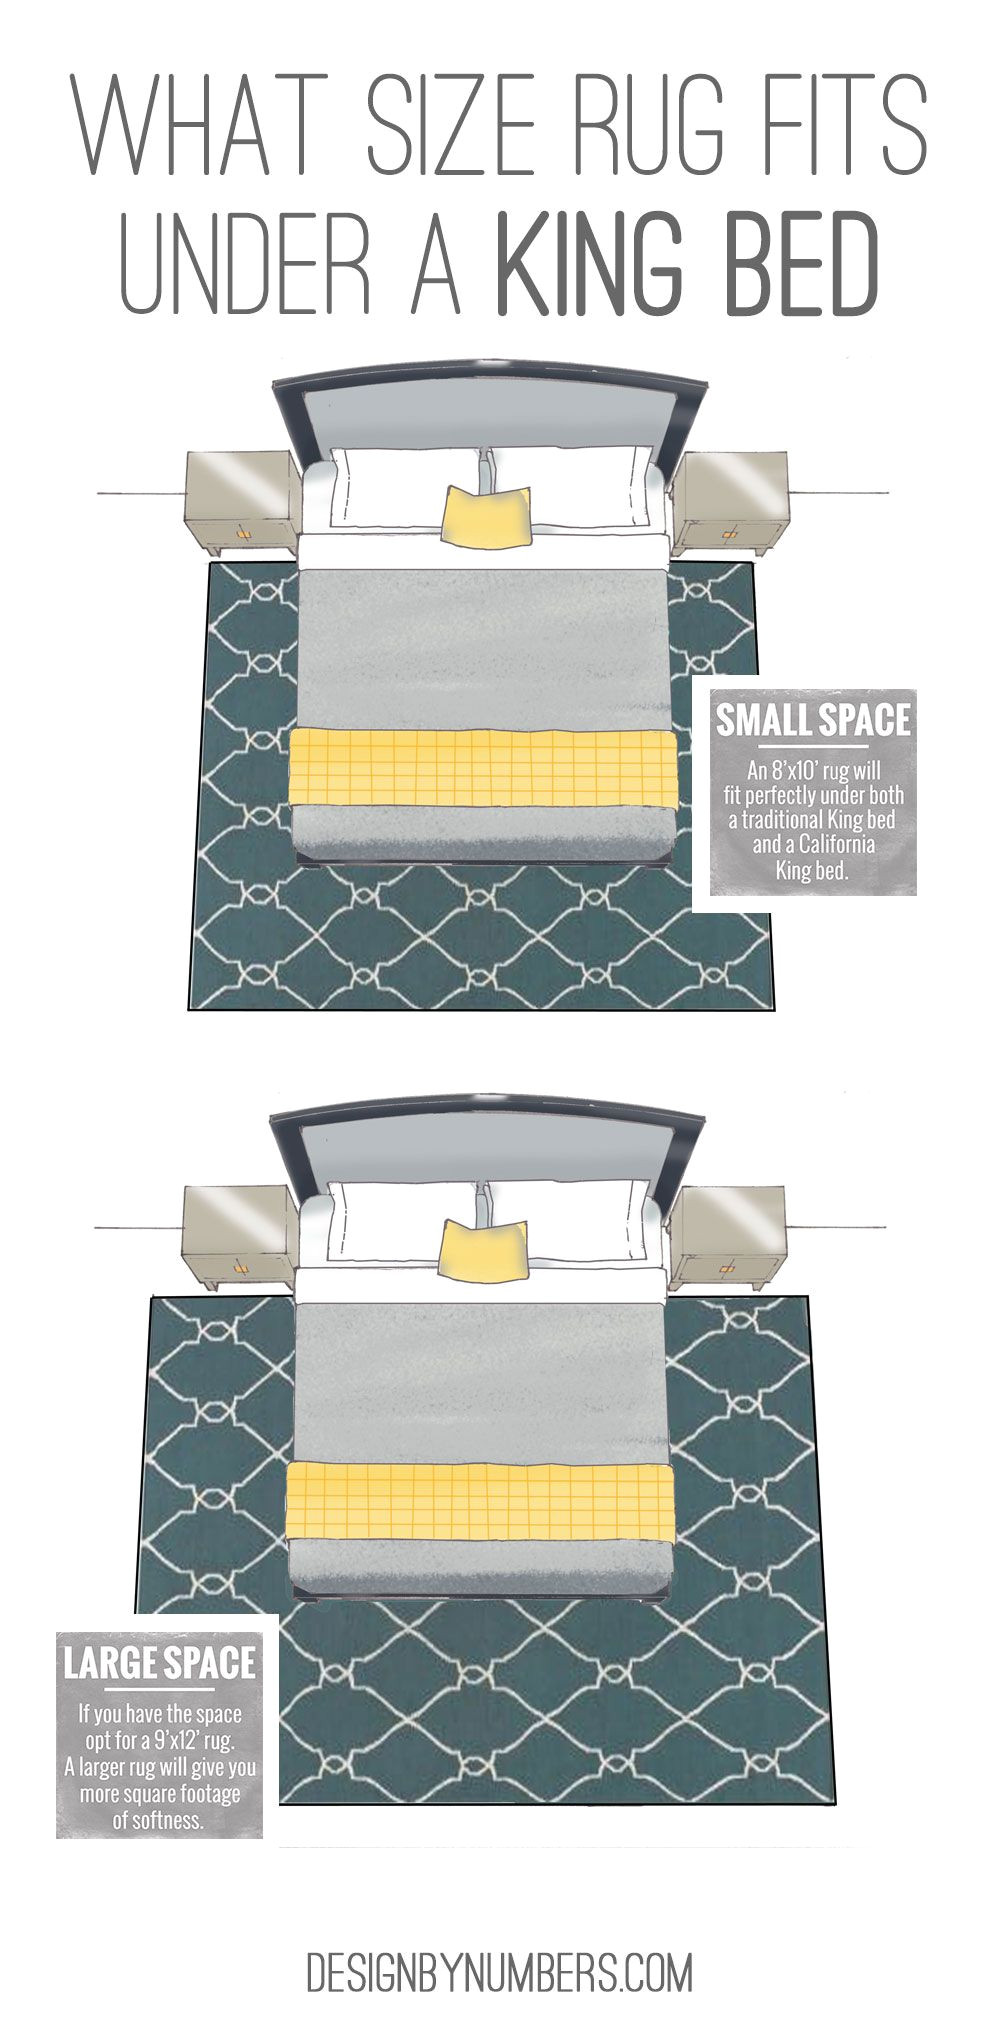 8 X 10 Rug Under Queen Bed What Size Rug Fits Under A King Bed Design by Numbers Living